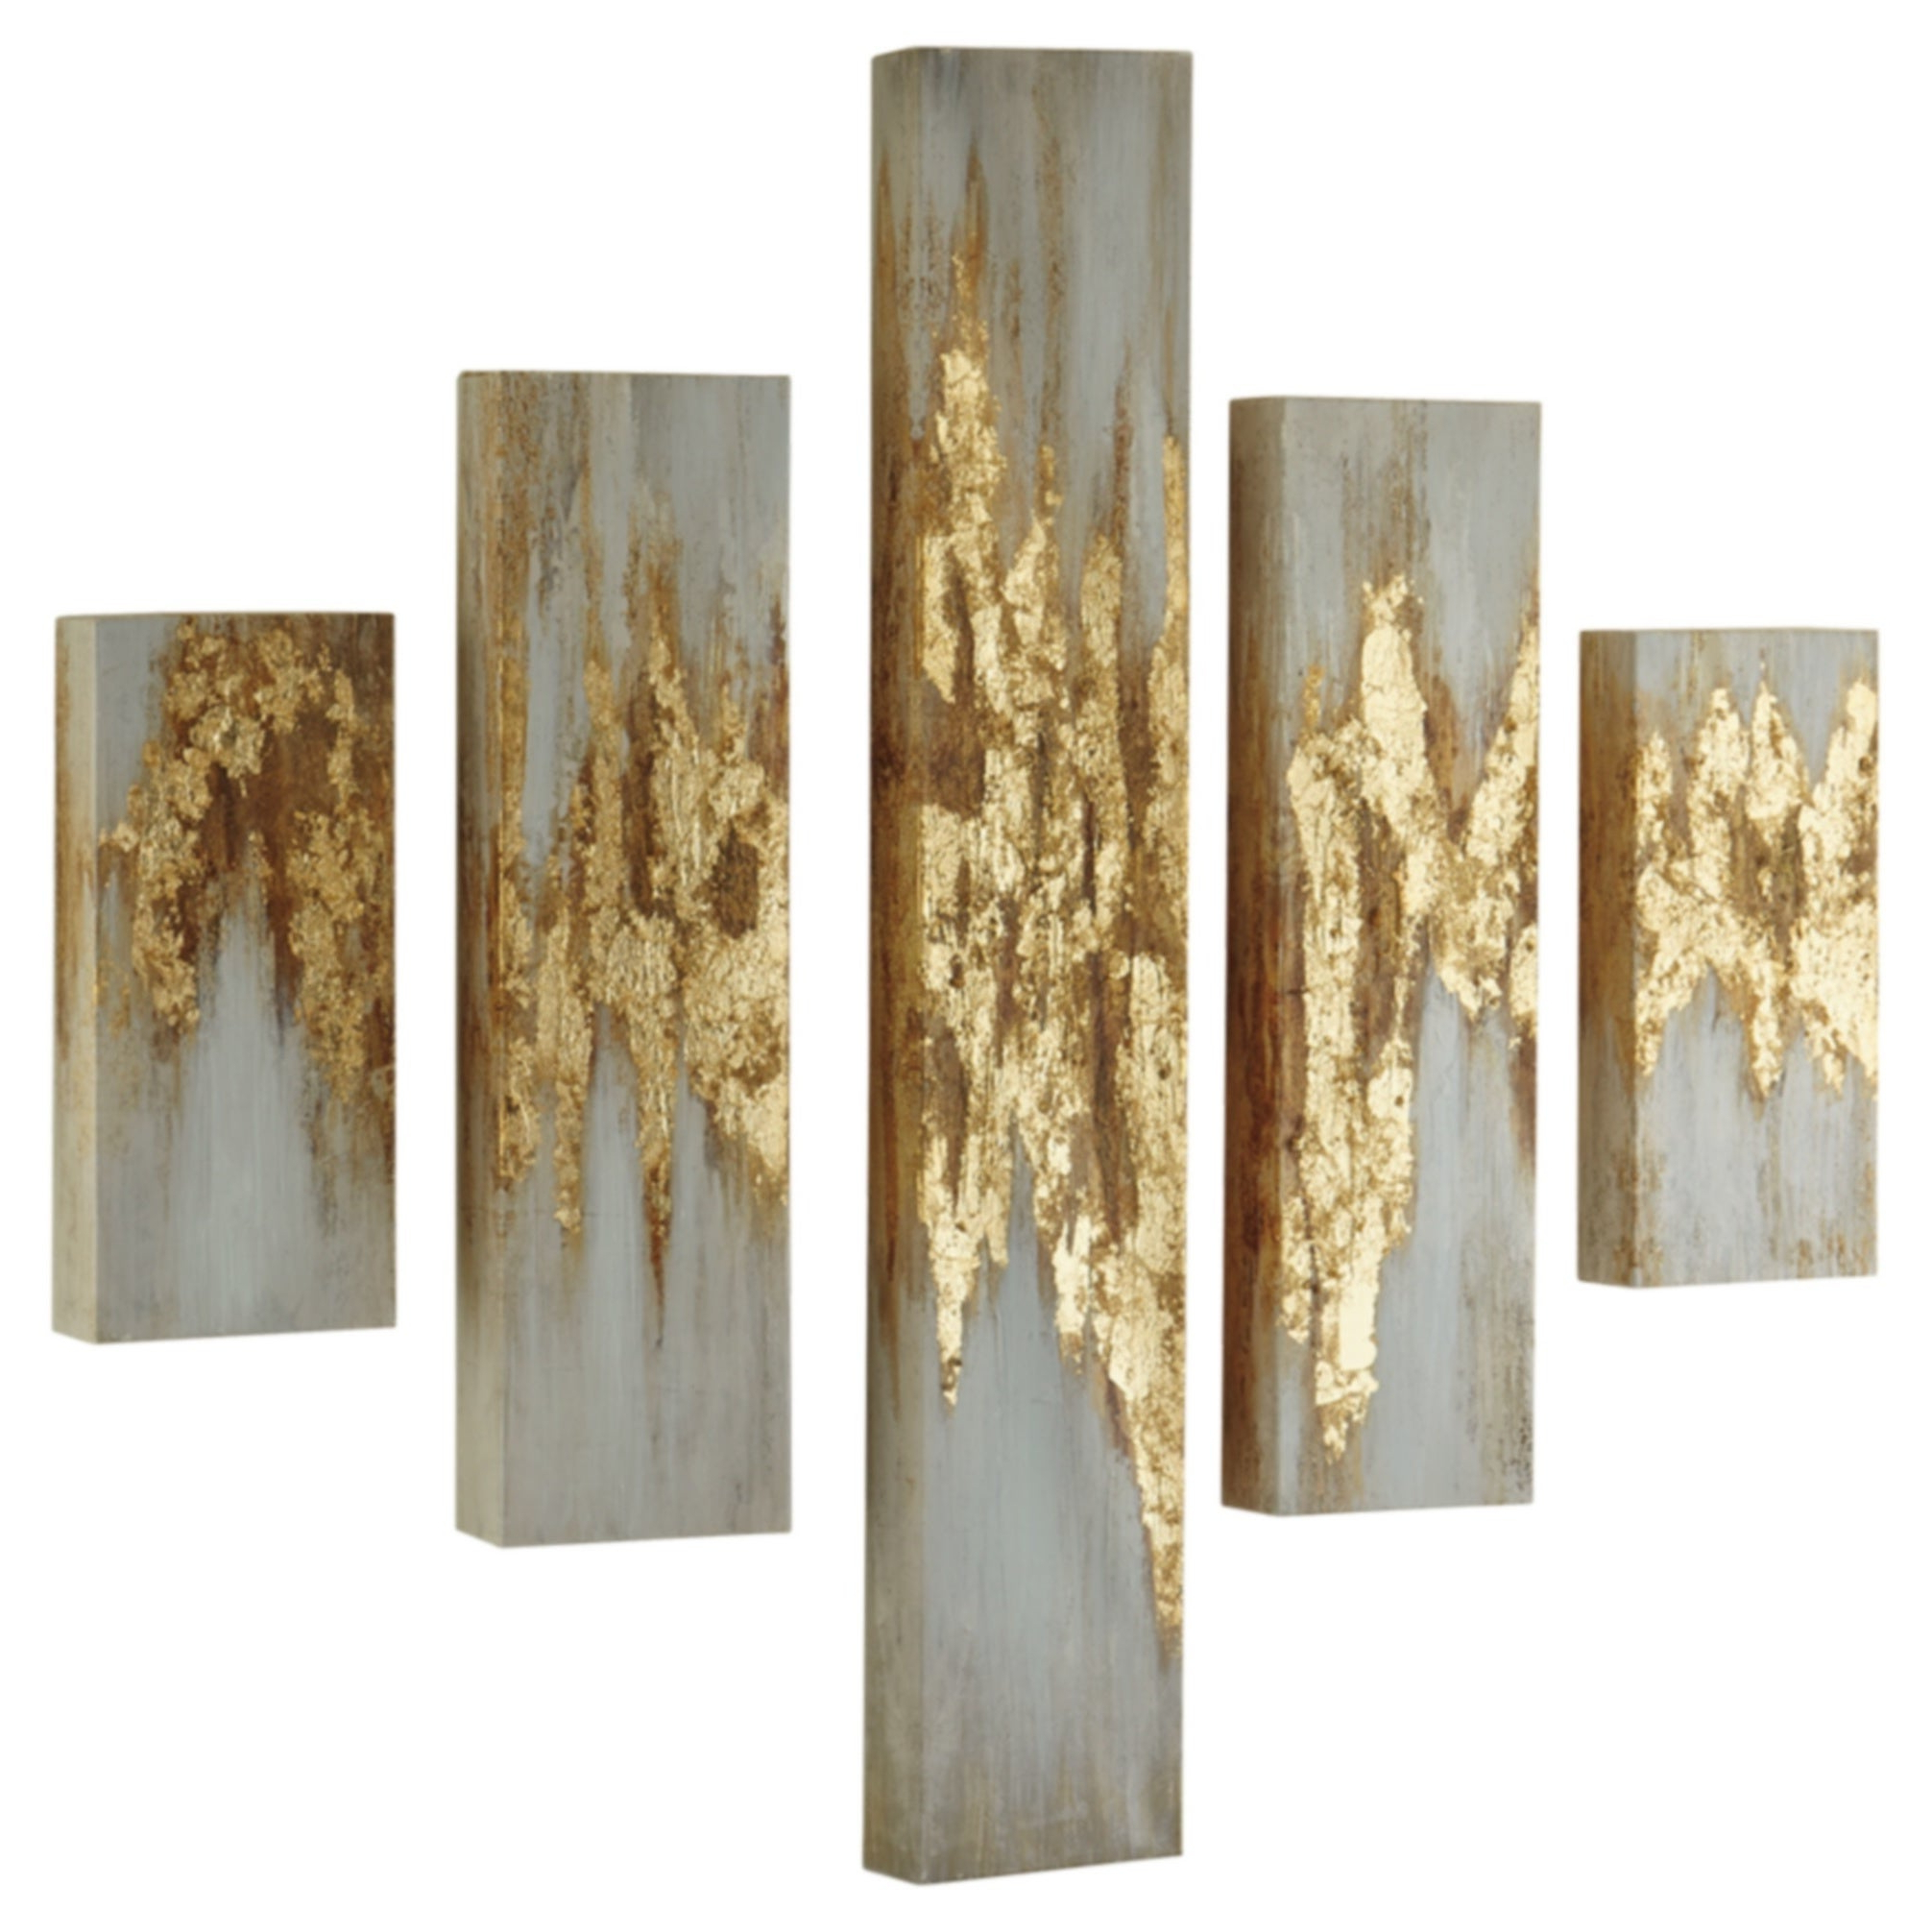 Fashionable 3 Piece Star Wall Decor Sets Regarding Matching Sets (View 8 of 20)